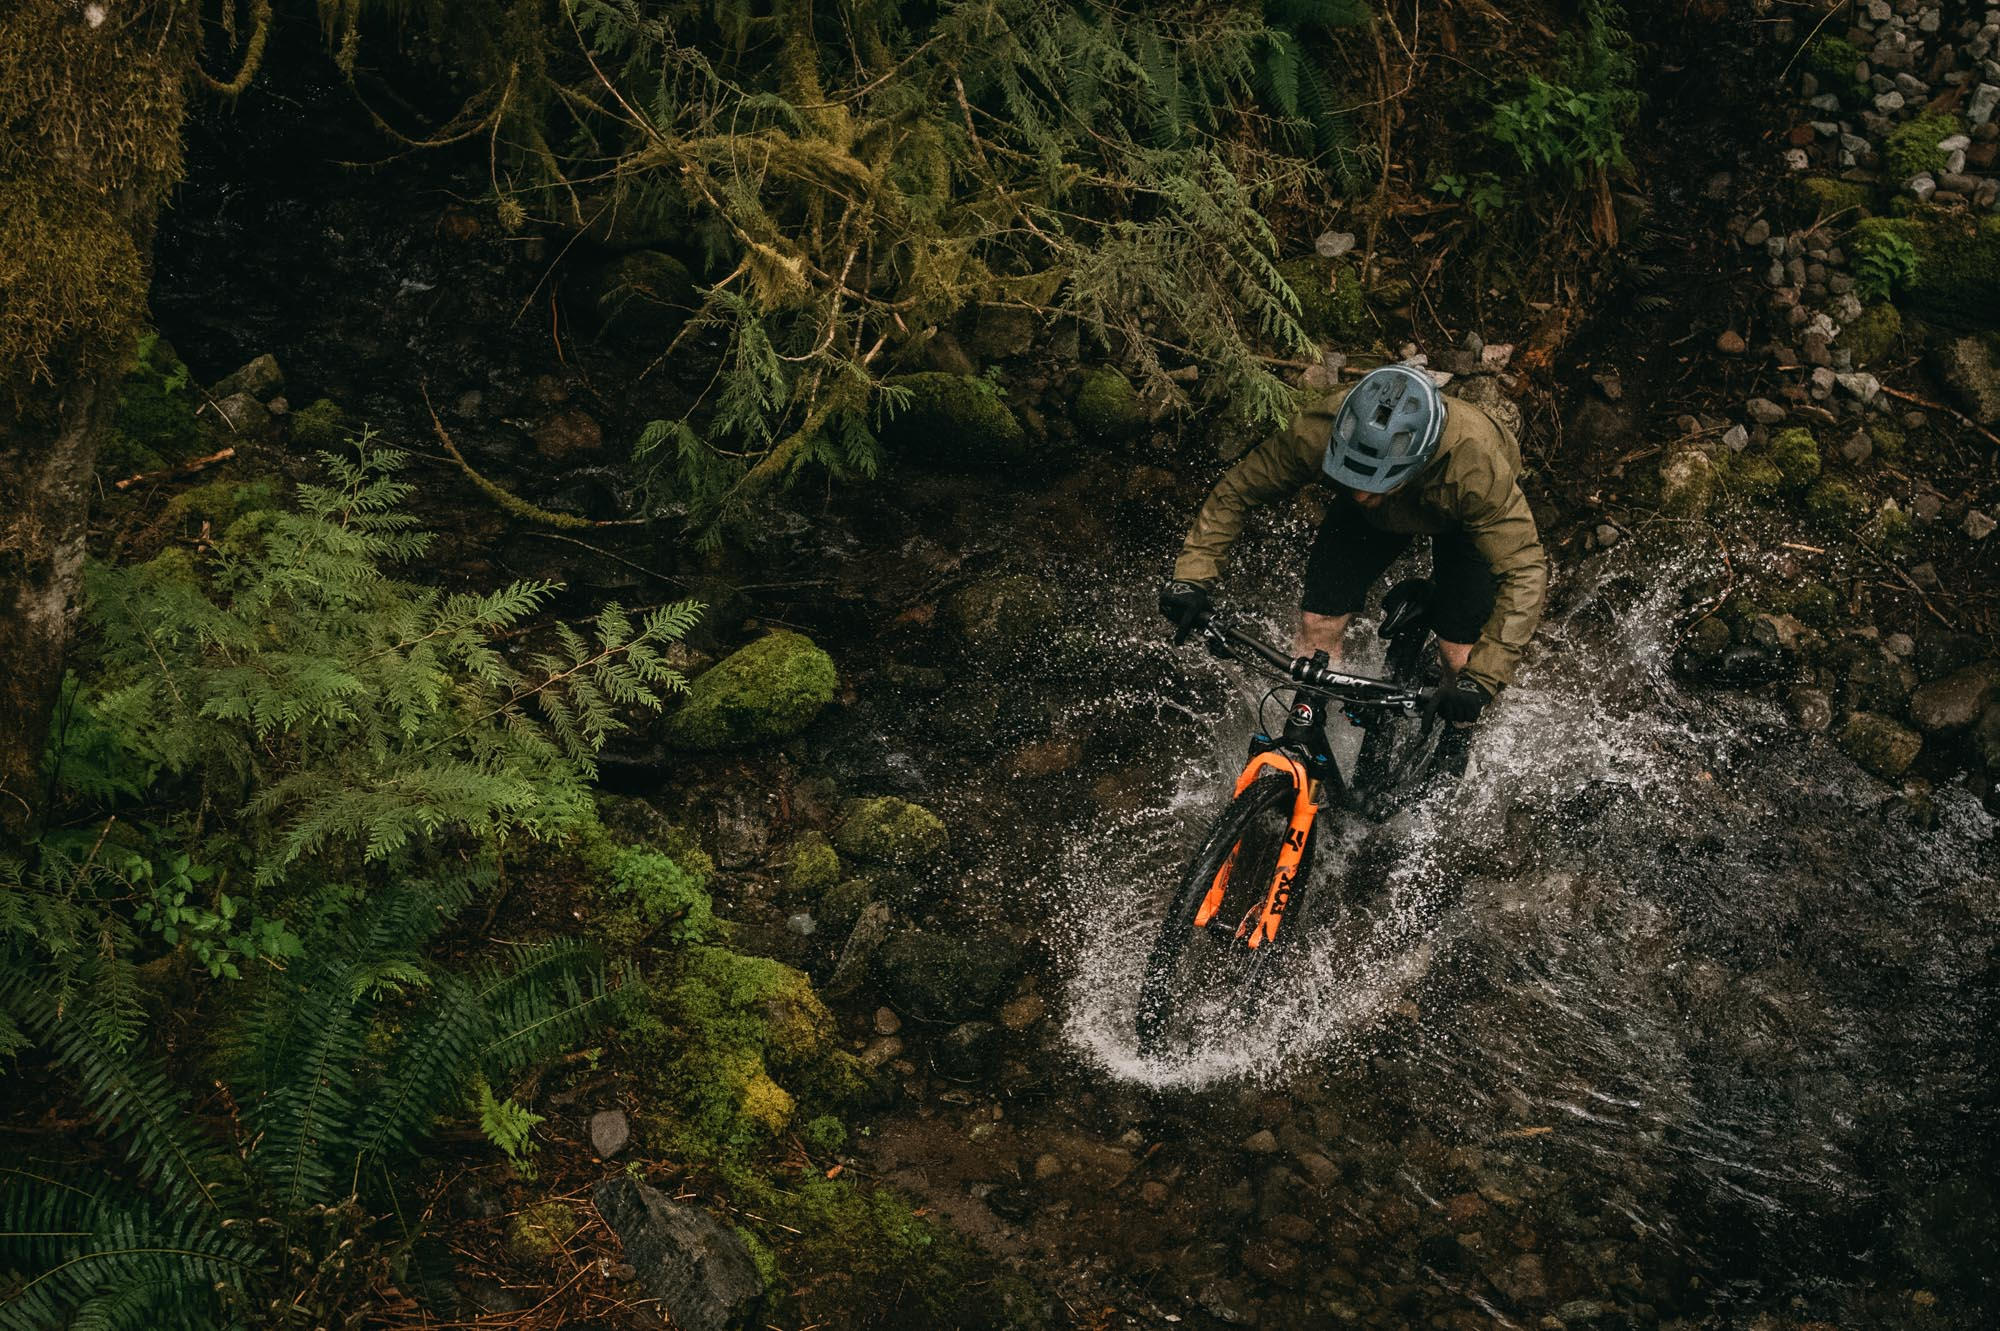 Jesse Melamed rides the Element in Squamish, Canada.